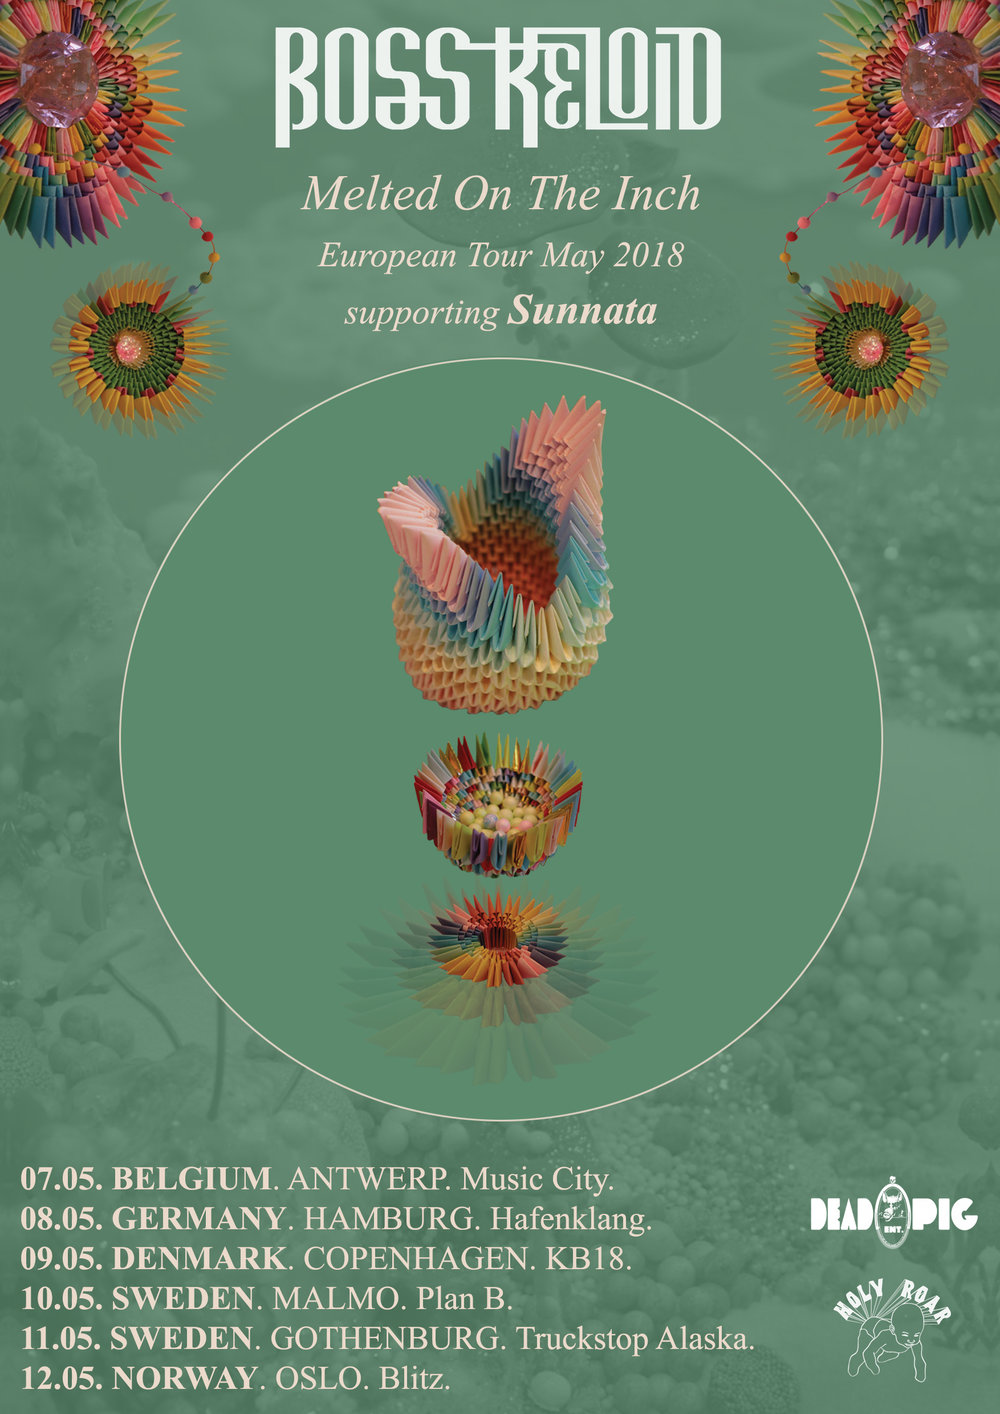 BK Euro Tour May 2018.jpg